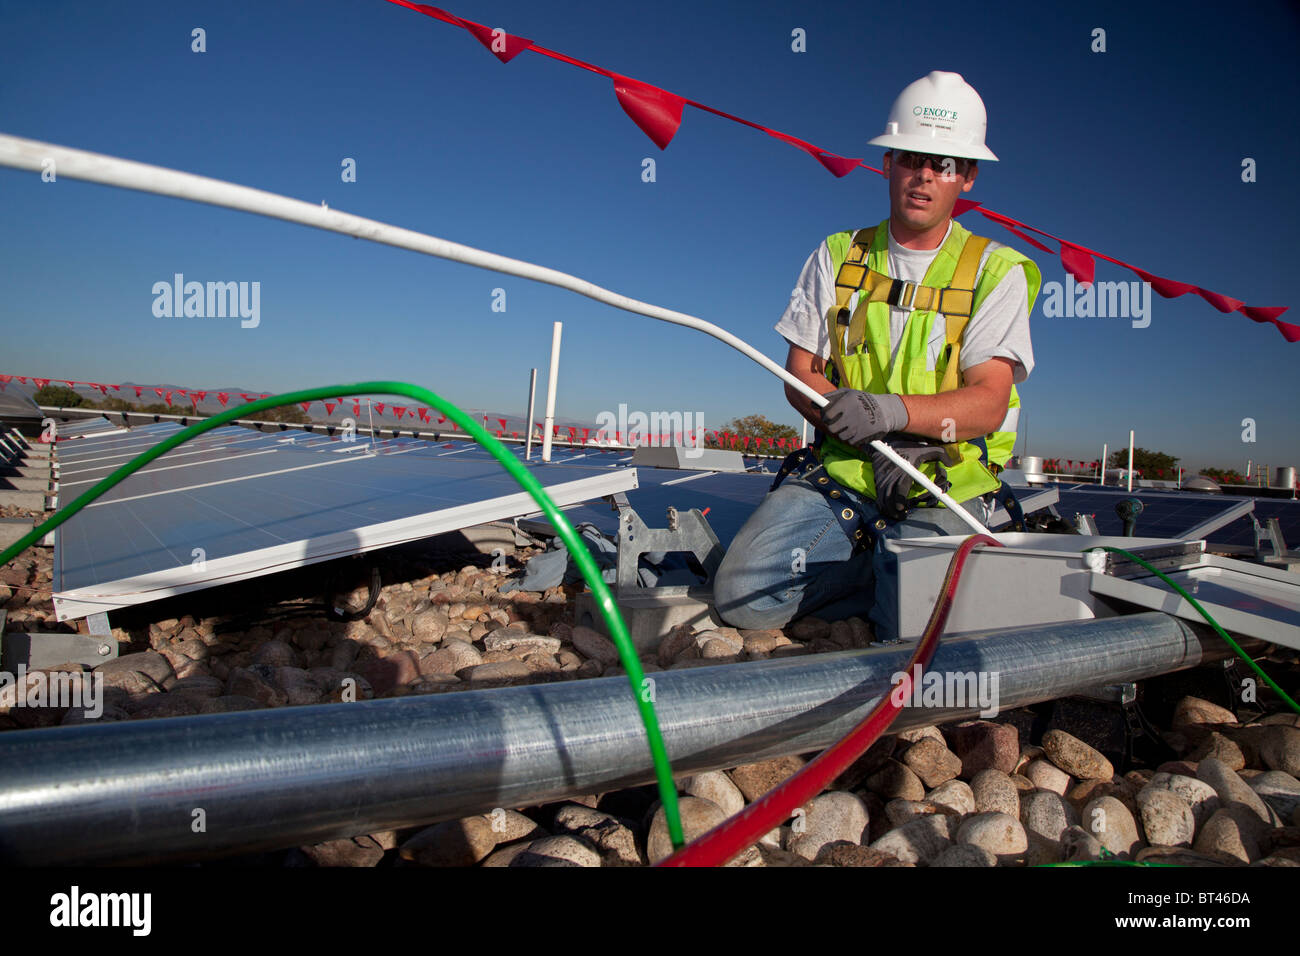 Denver, Colorado - Workers install wiring for solar photovoltaic panels on the roof of Harrington Elementary School. - Stock Image